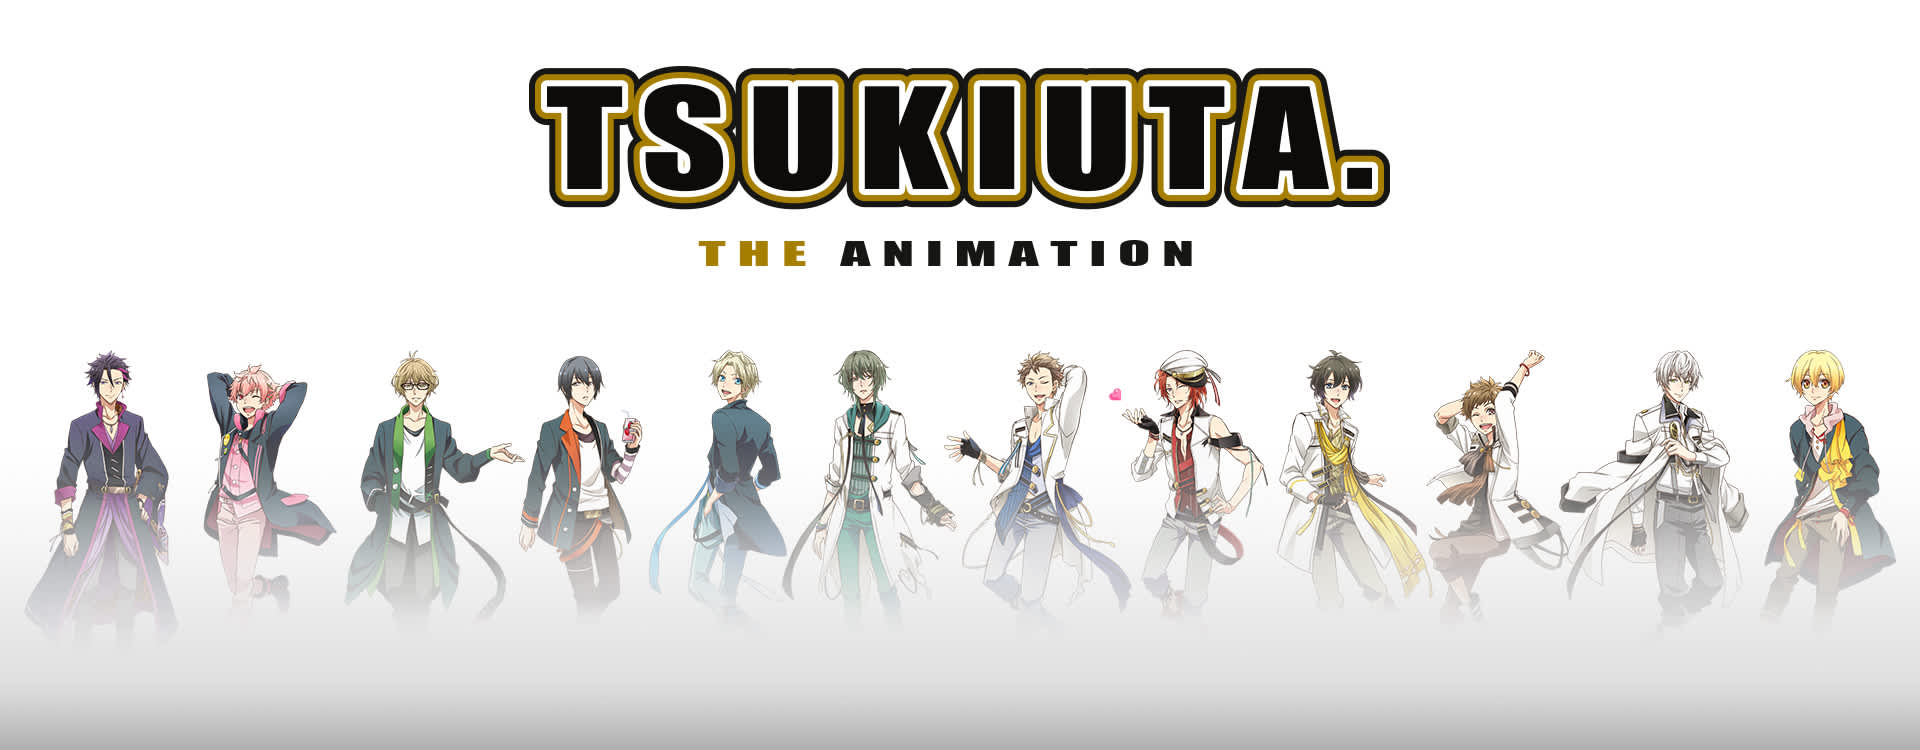 TSUKIUTA. The Animation